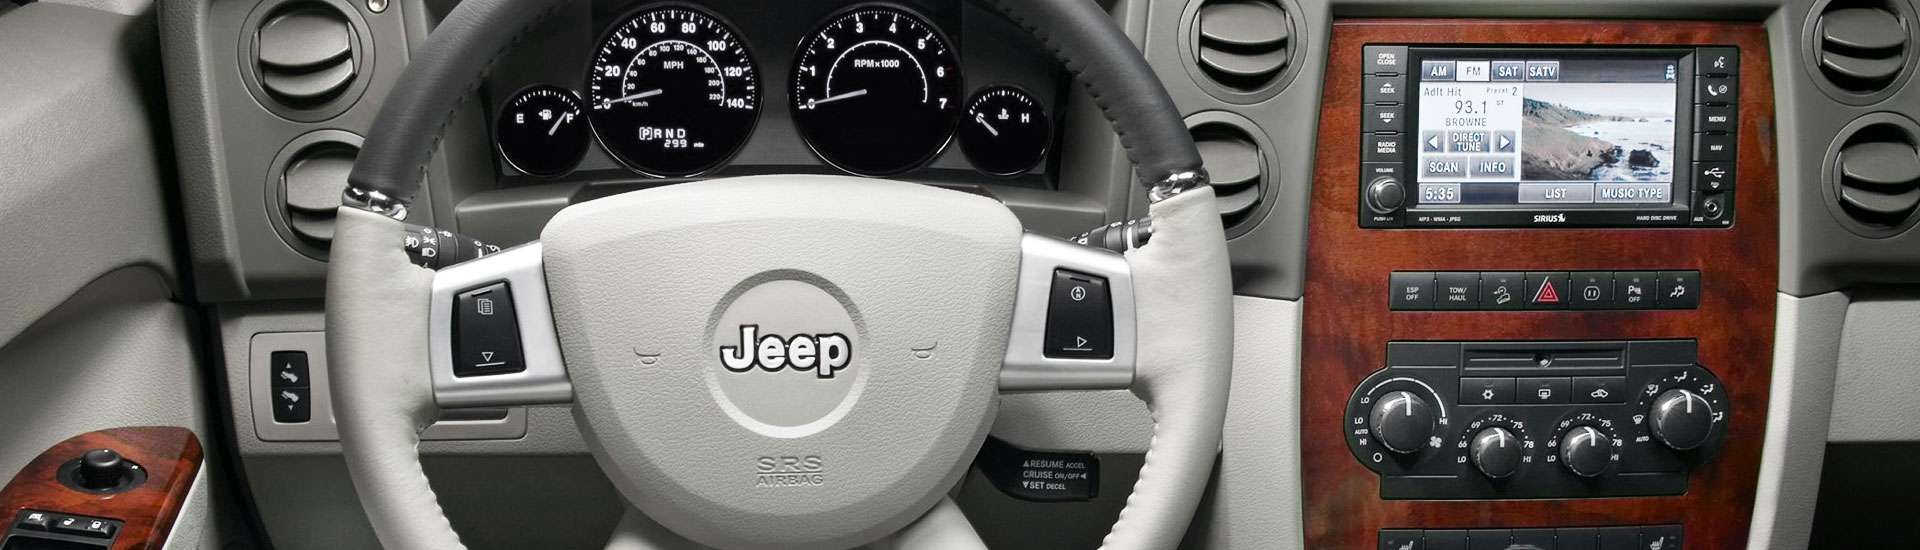 Jeep Commander Custom Dash Kits